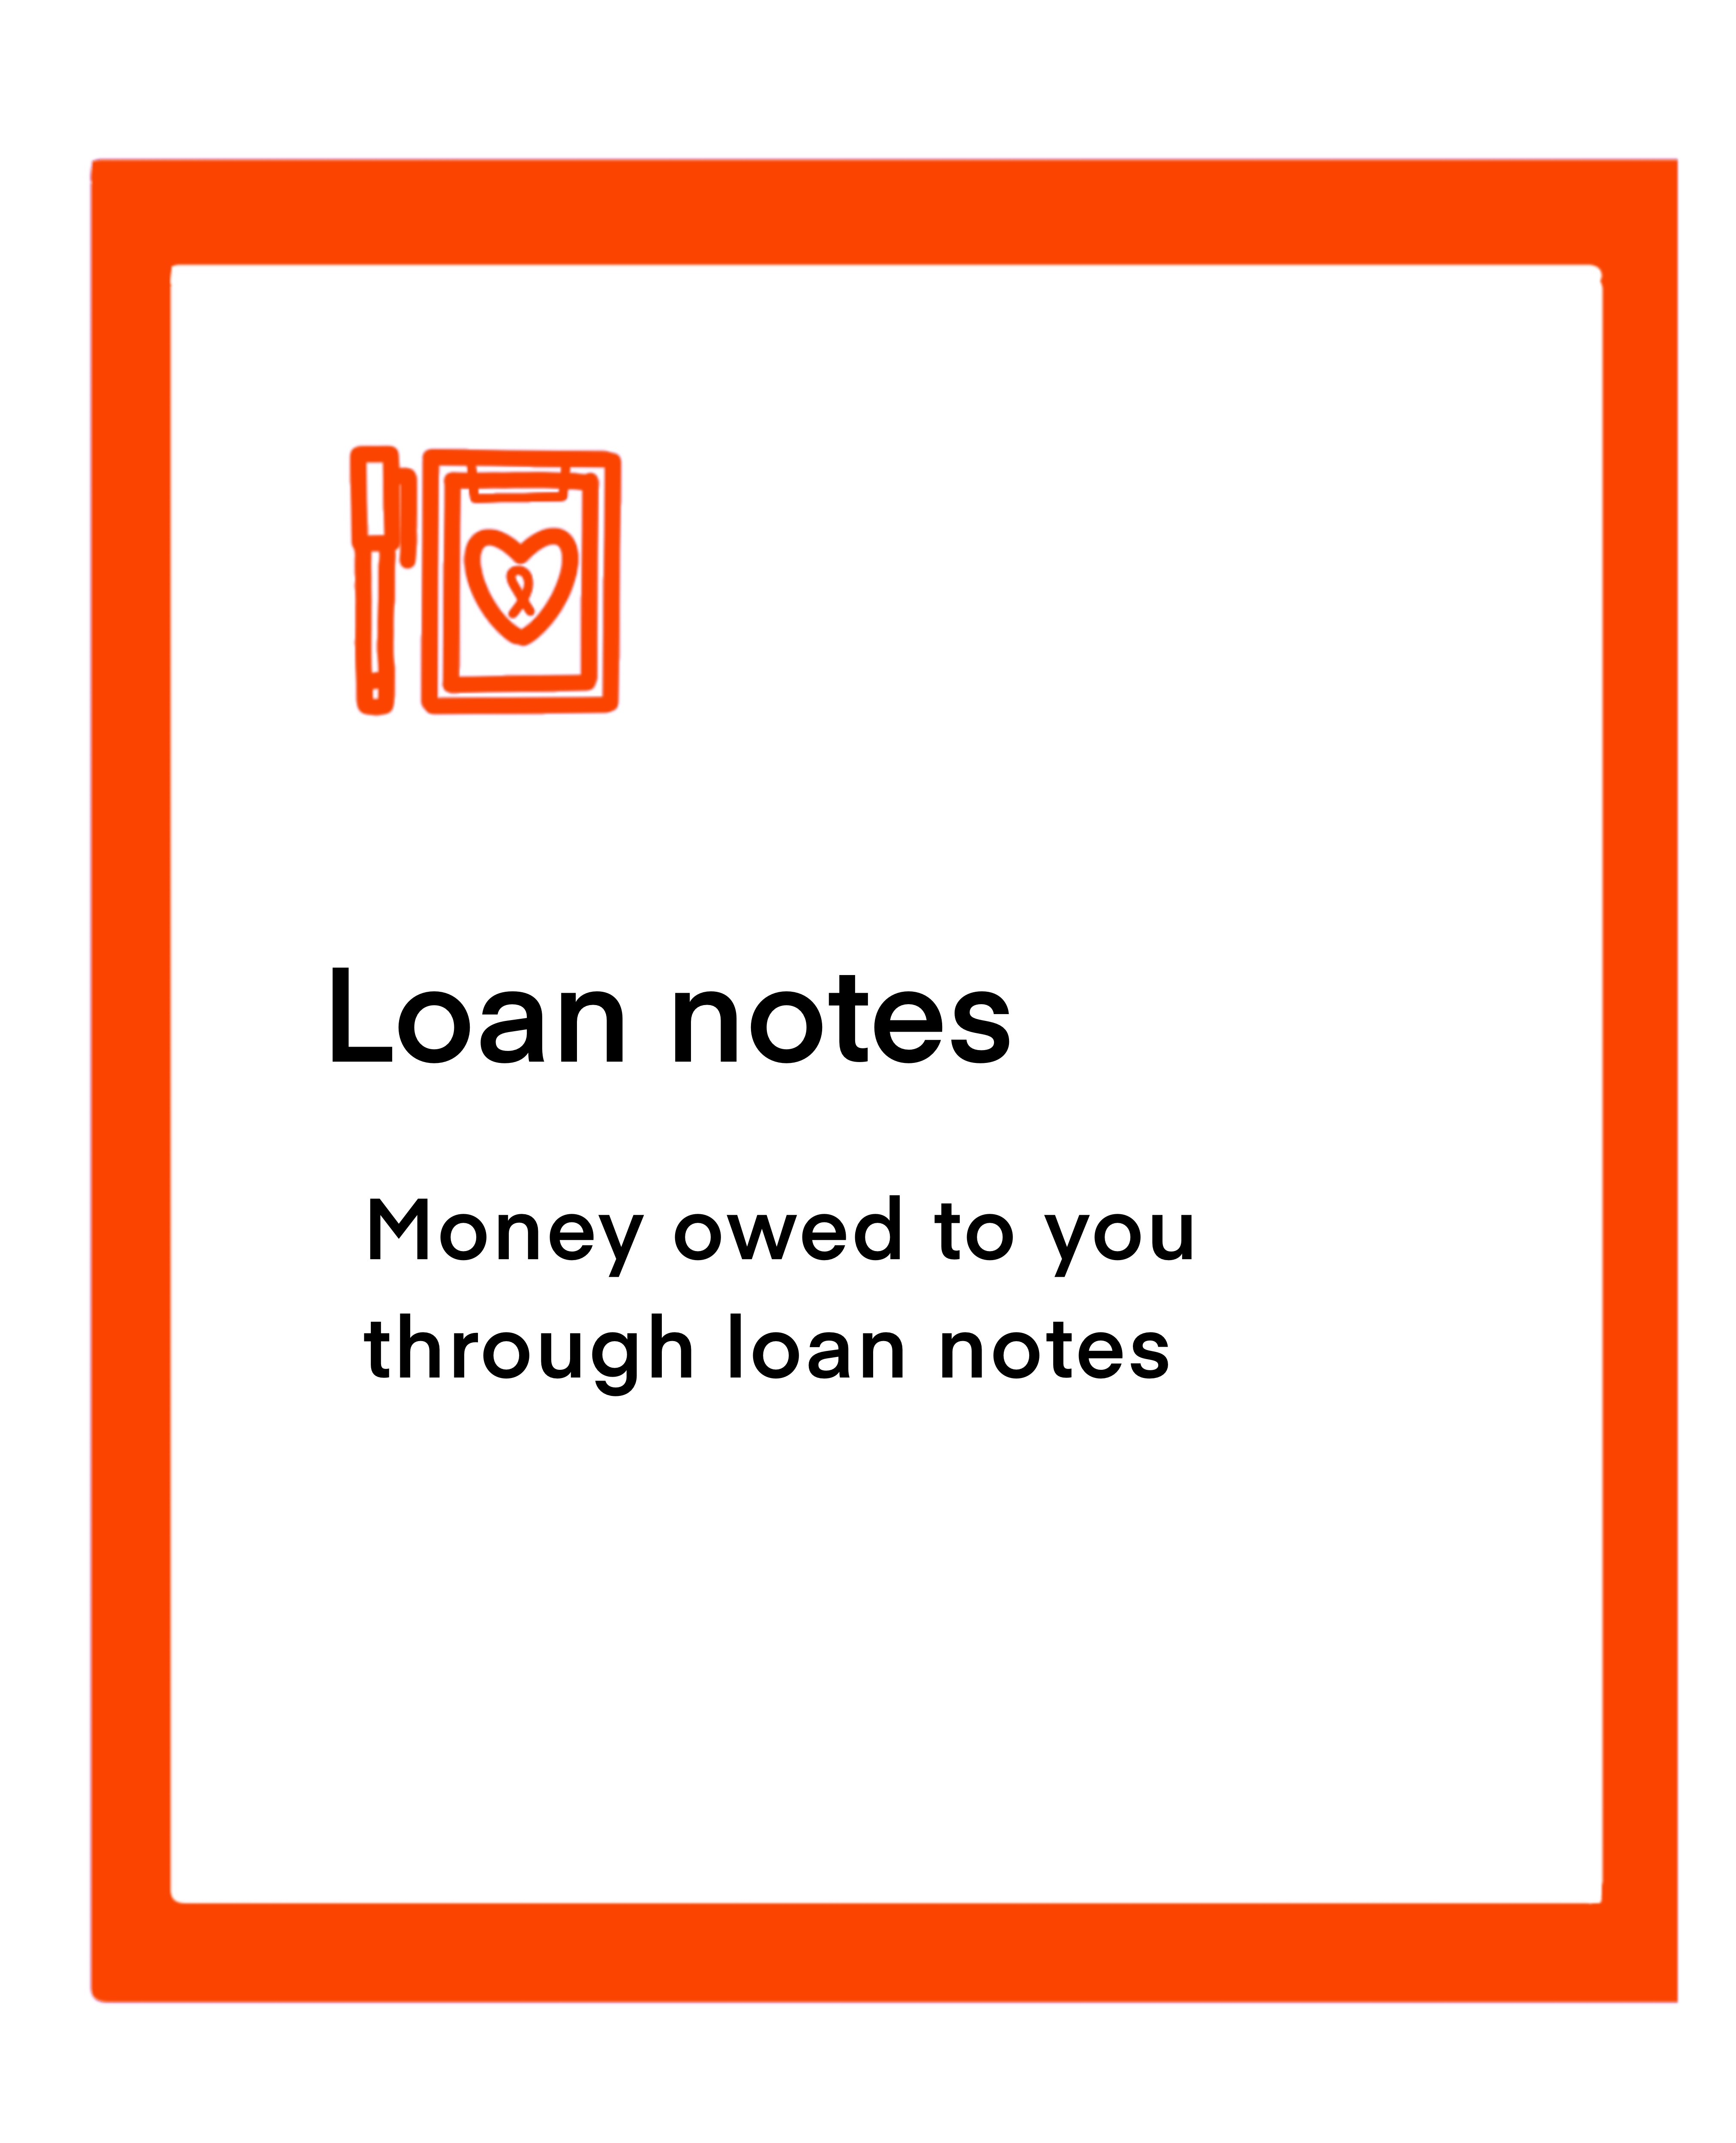 Loan notes